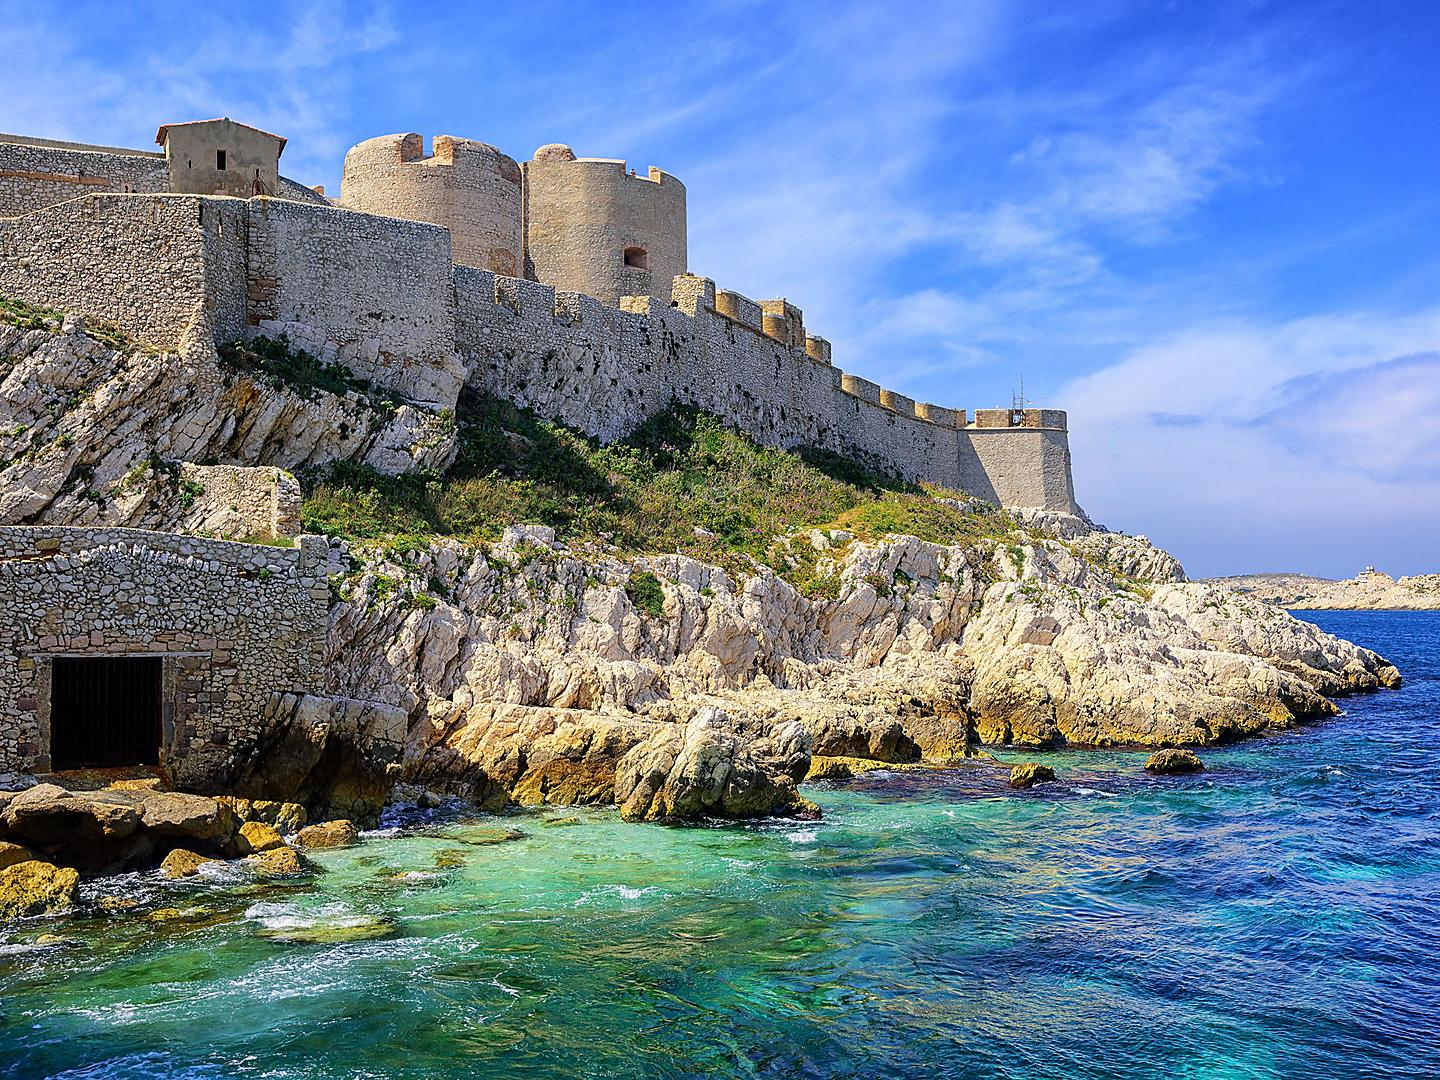 Provence (Marseille), France, Chateau d'If